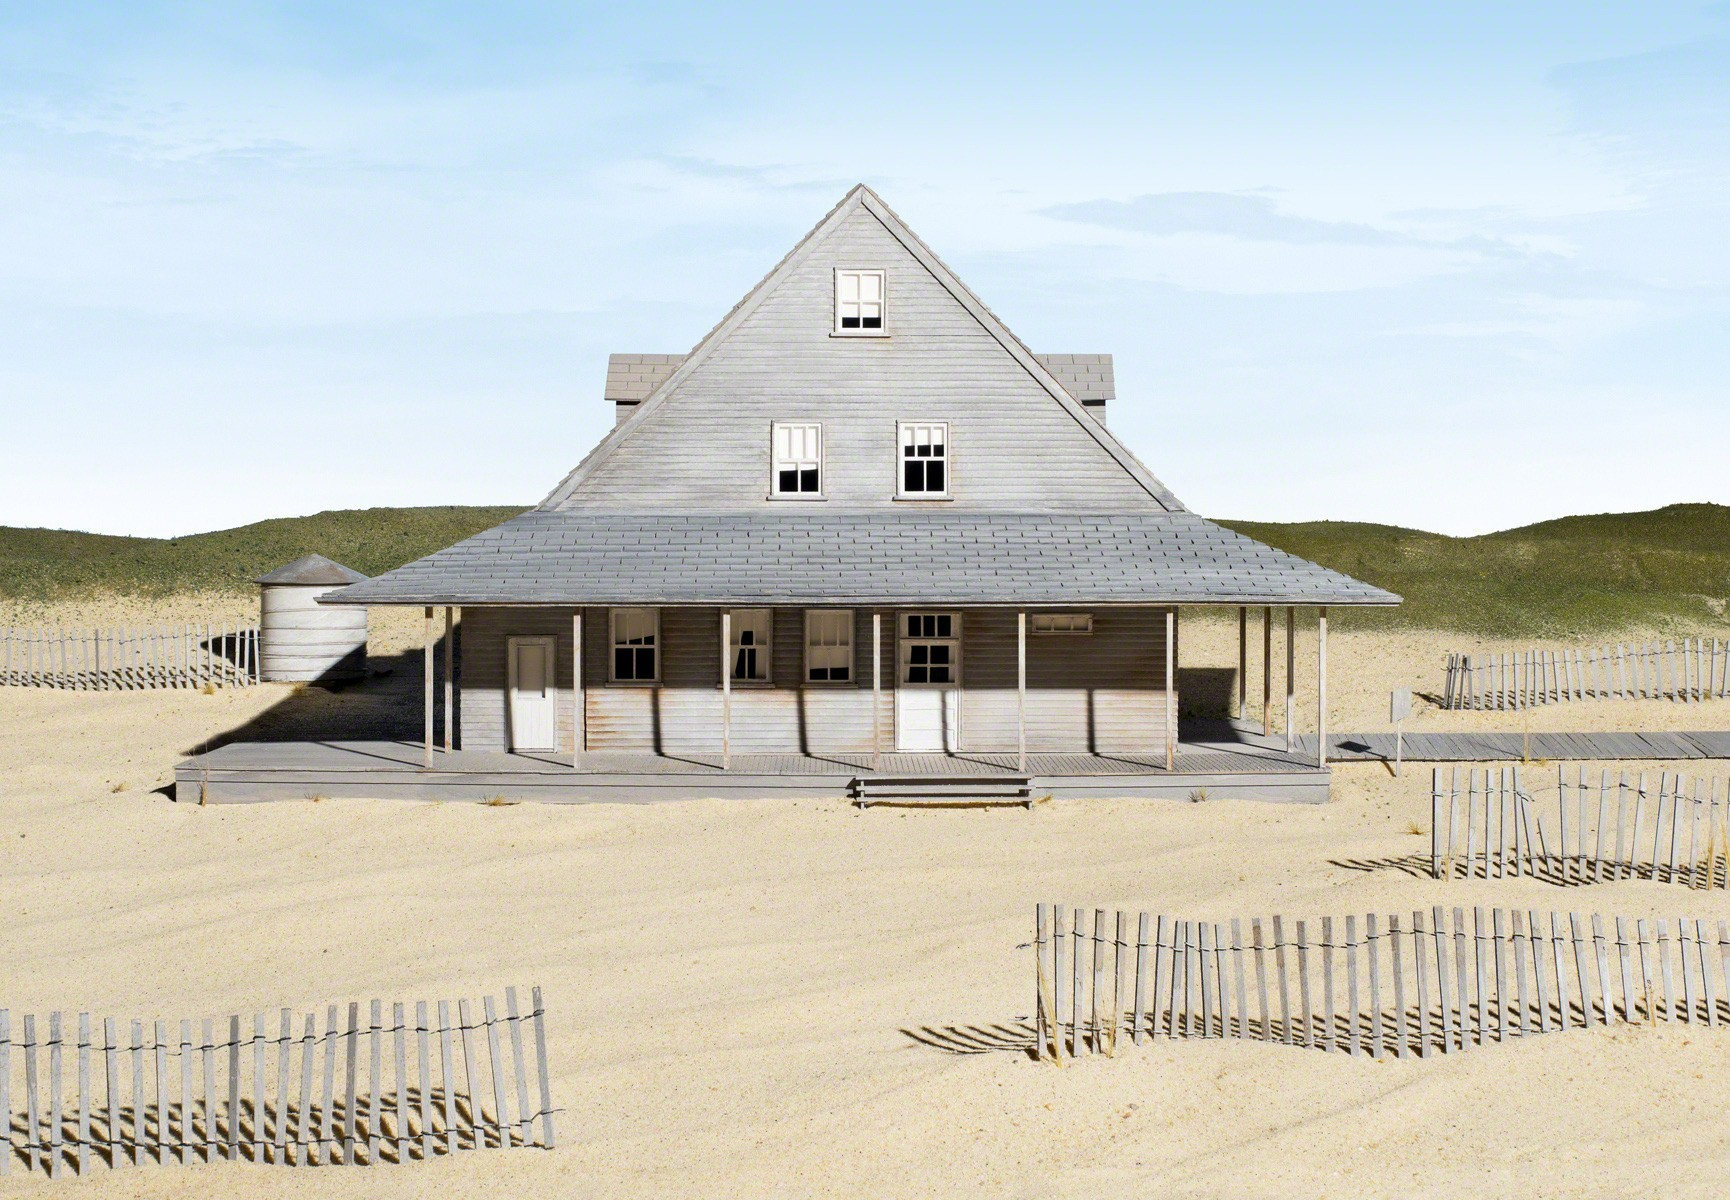 , 'Caffey's Inlet Lifesaving Station (Dare County, NC),' 2013, Sean Kelly Gallery